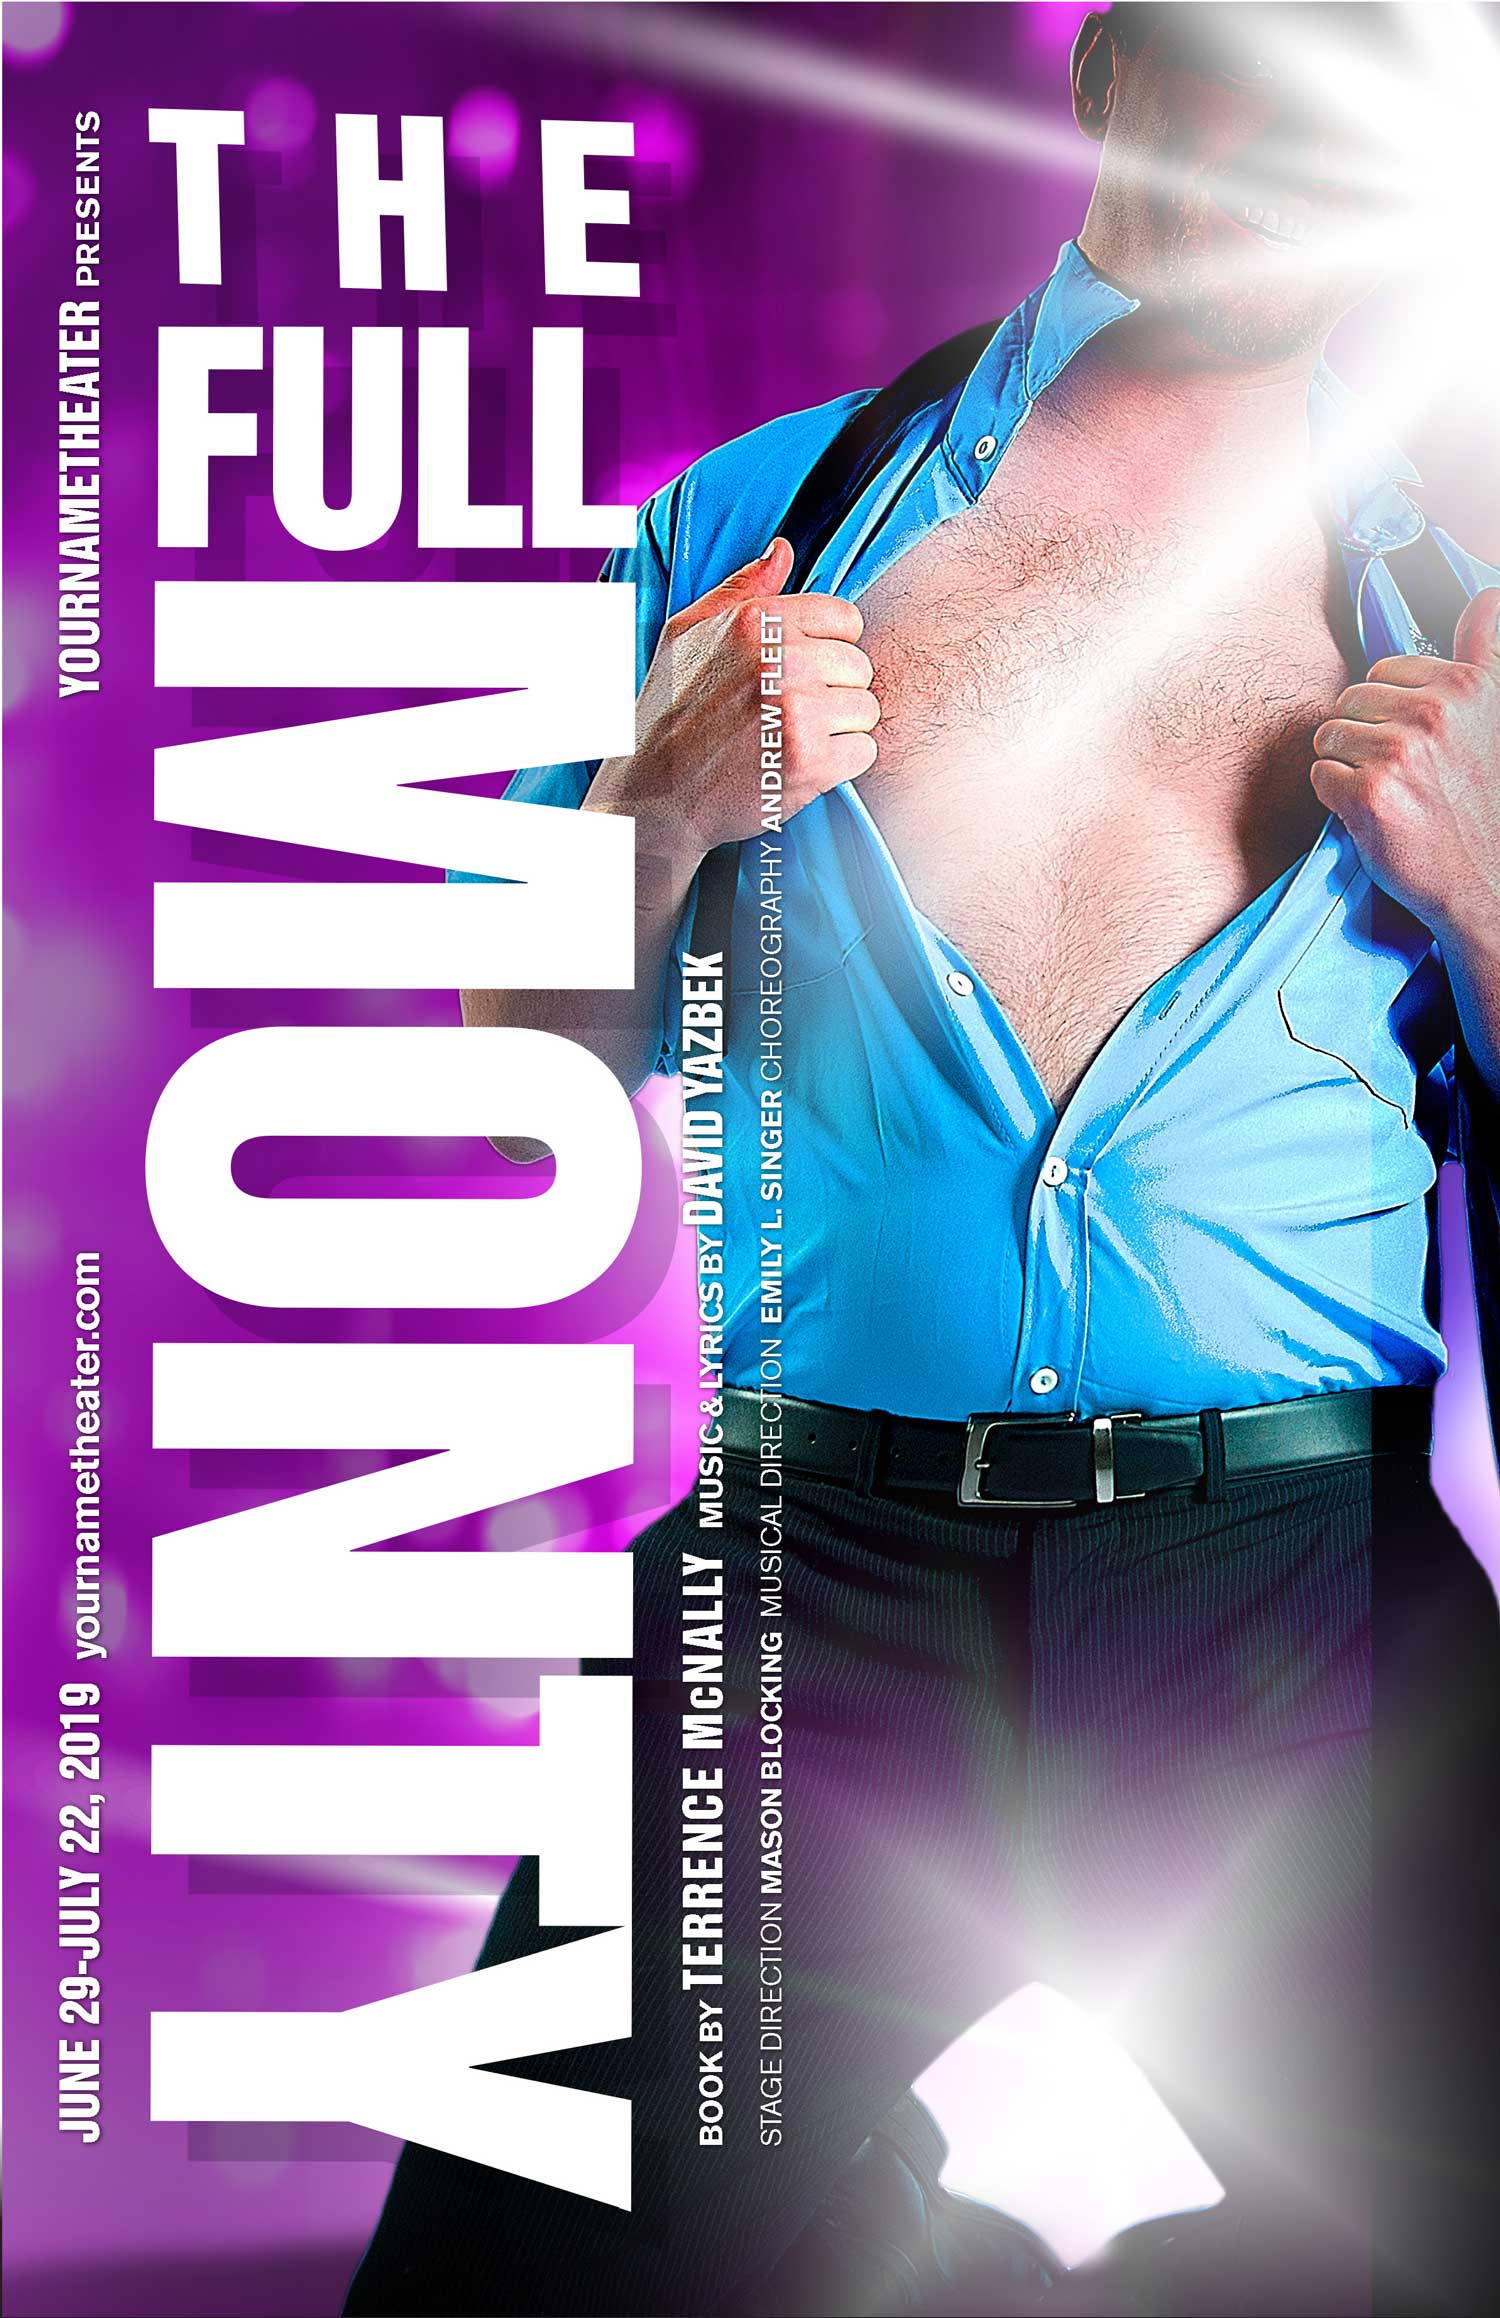 Drama -Queen-Graphics-Theatre Branding-Full-Monty-2.jpg